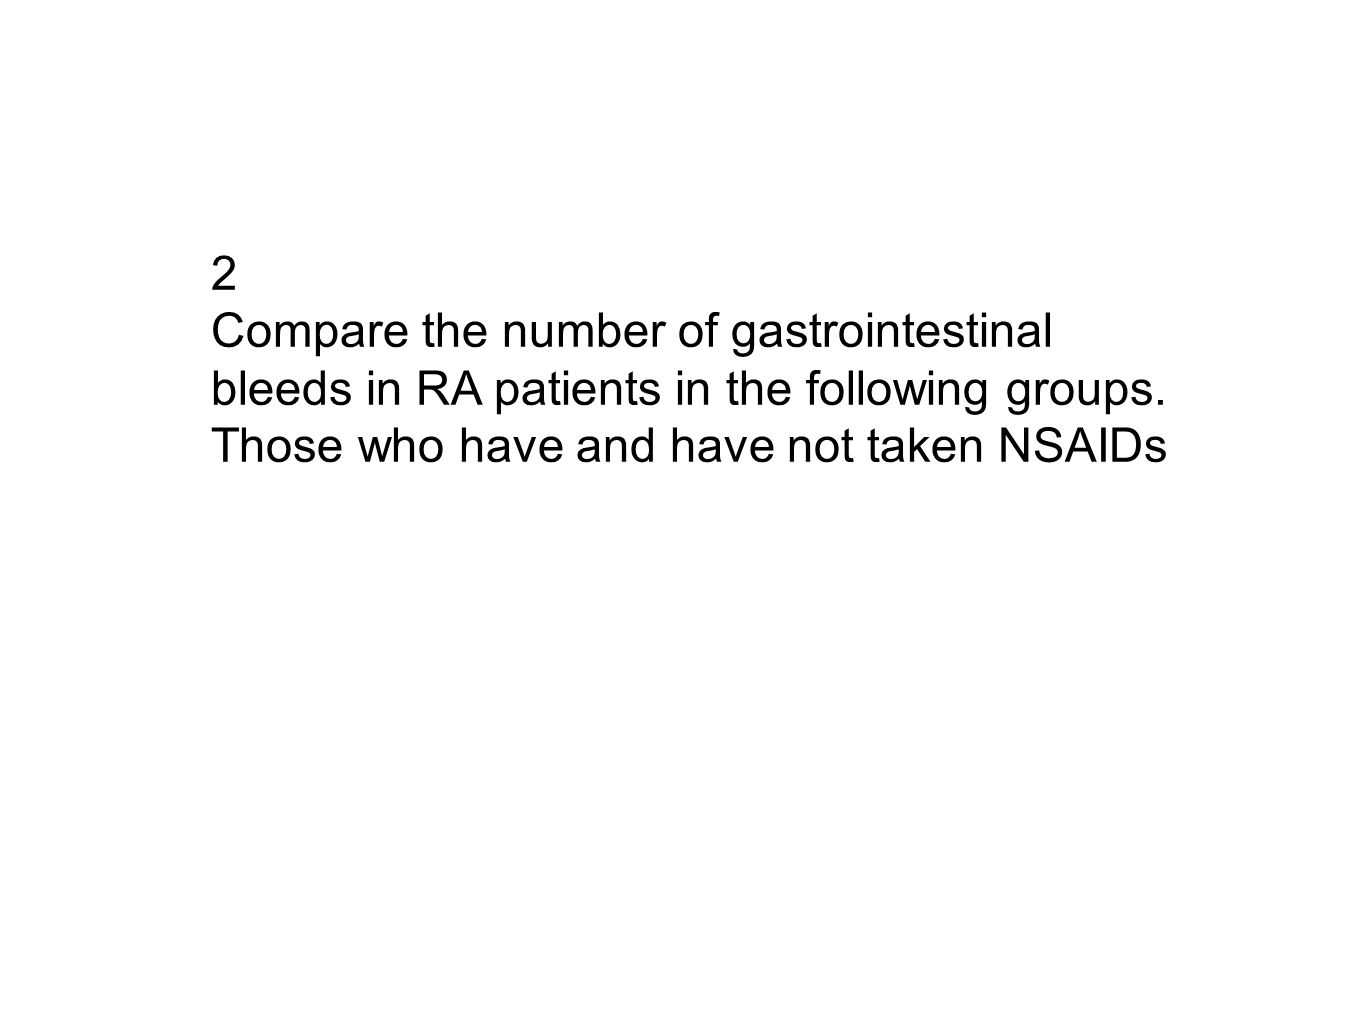 2 Compare the number of gastrointestinal bleeds in RA patients in the following groups.